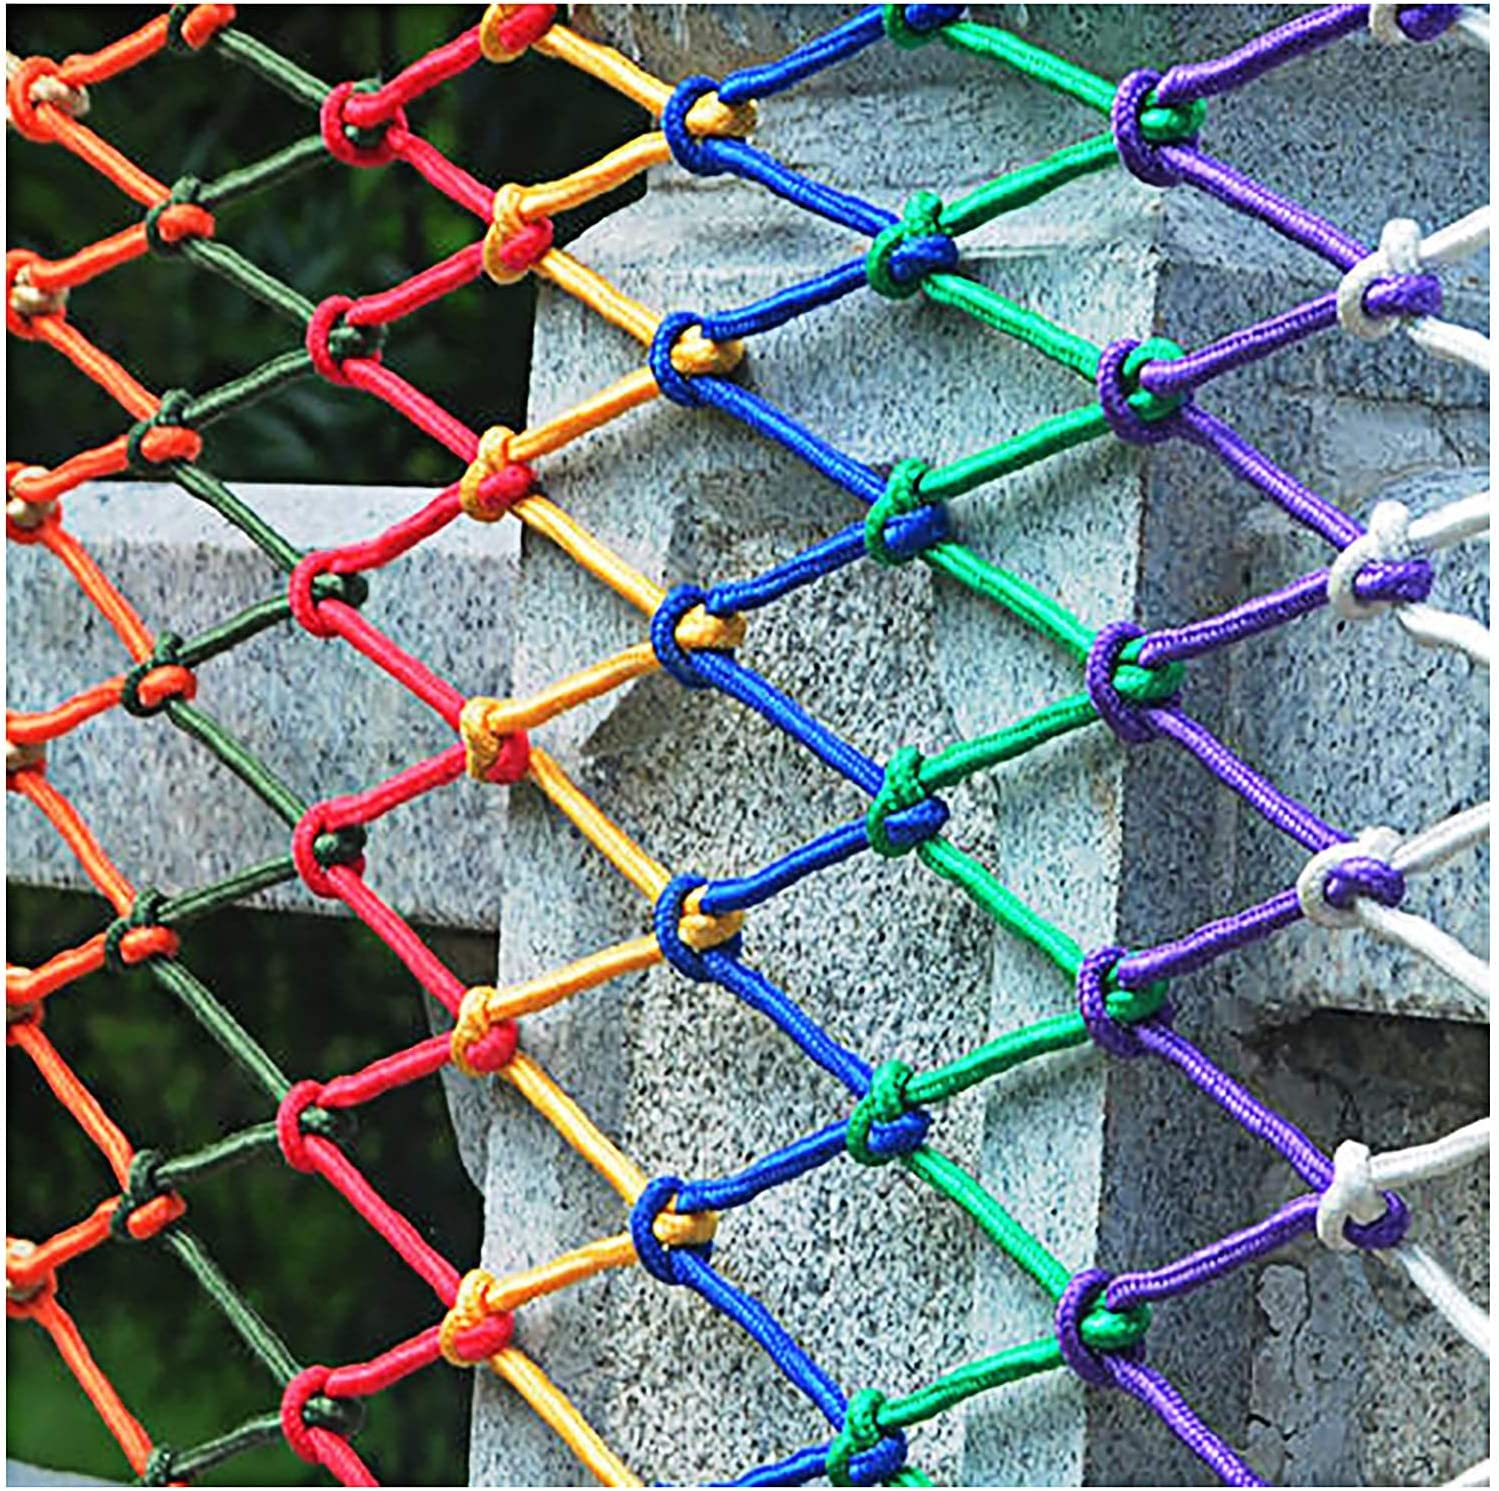 LGCXQ Outdoor Max 83% OFF net Cargo Attention brand Climbing Fitness for Nets